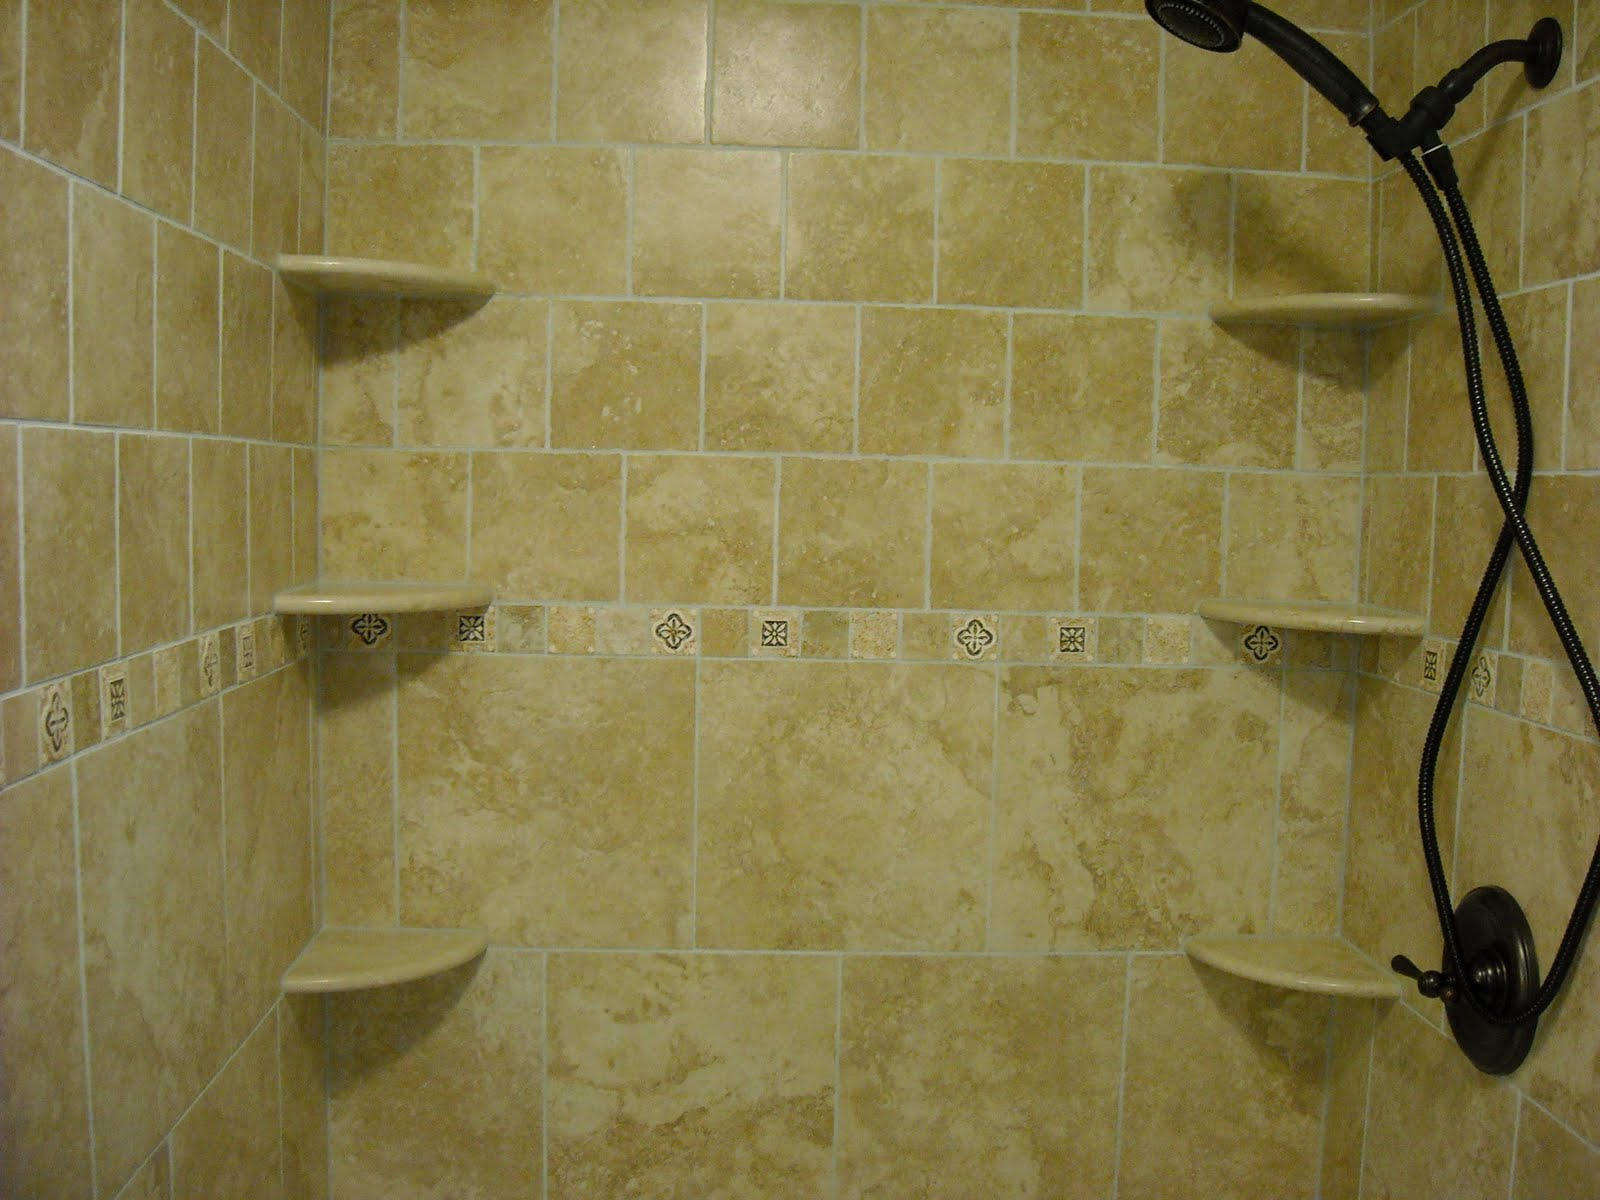 Bathroom Shower Shelf What To Wear With Khaki Pants